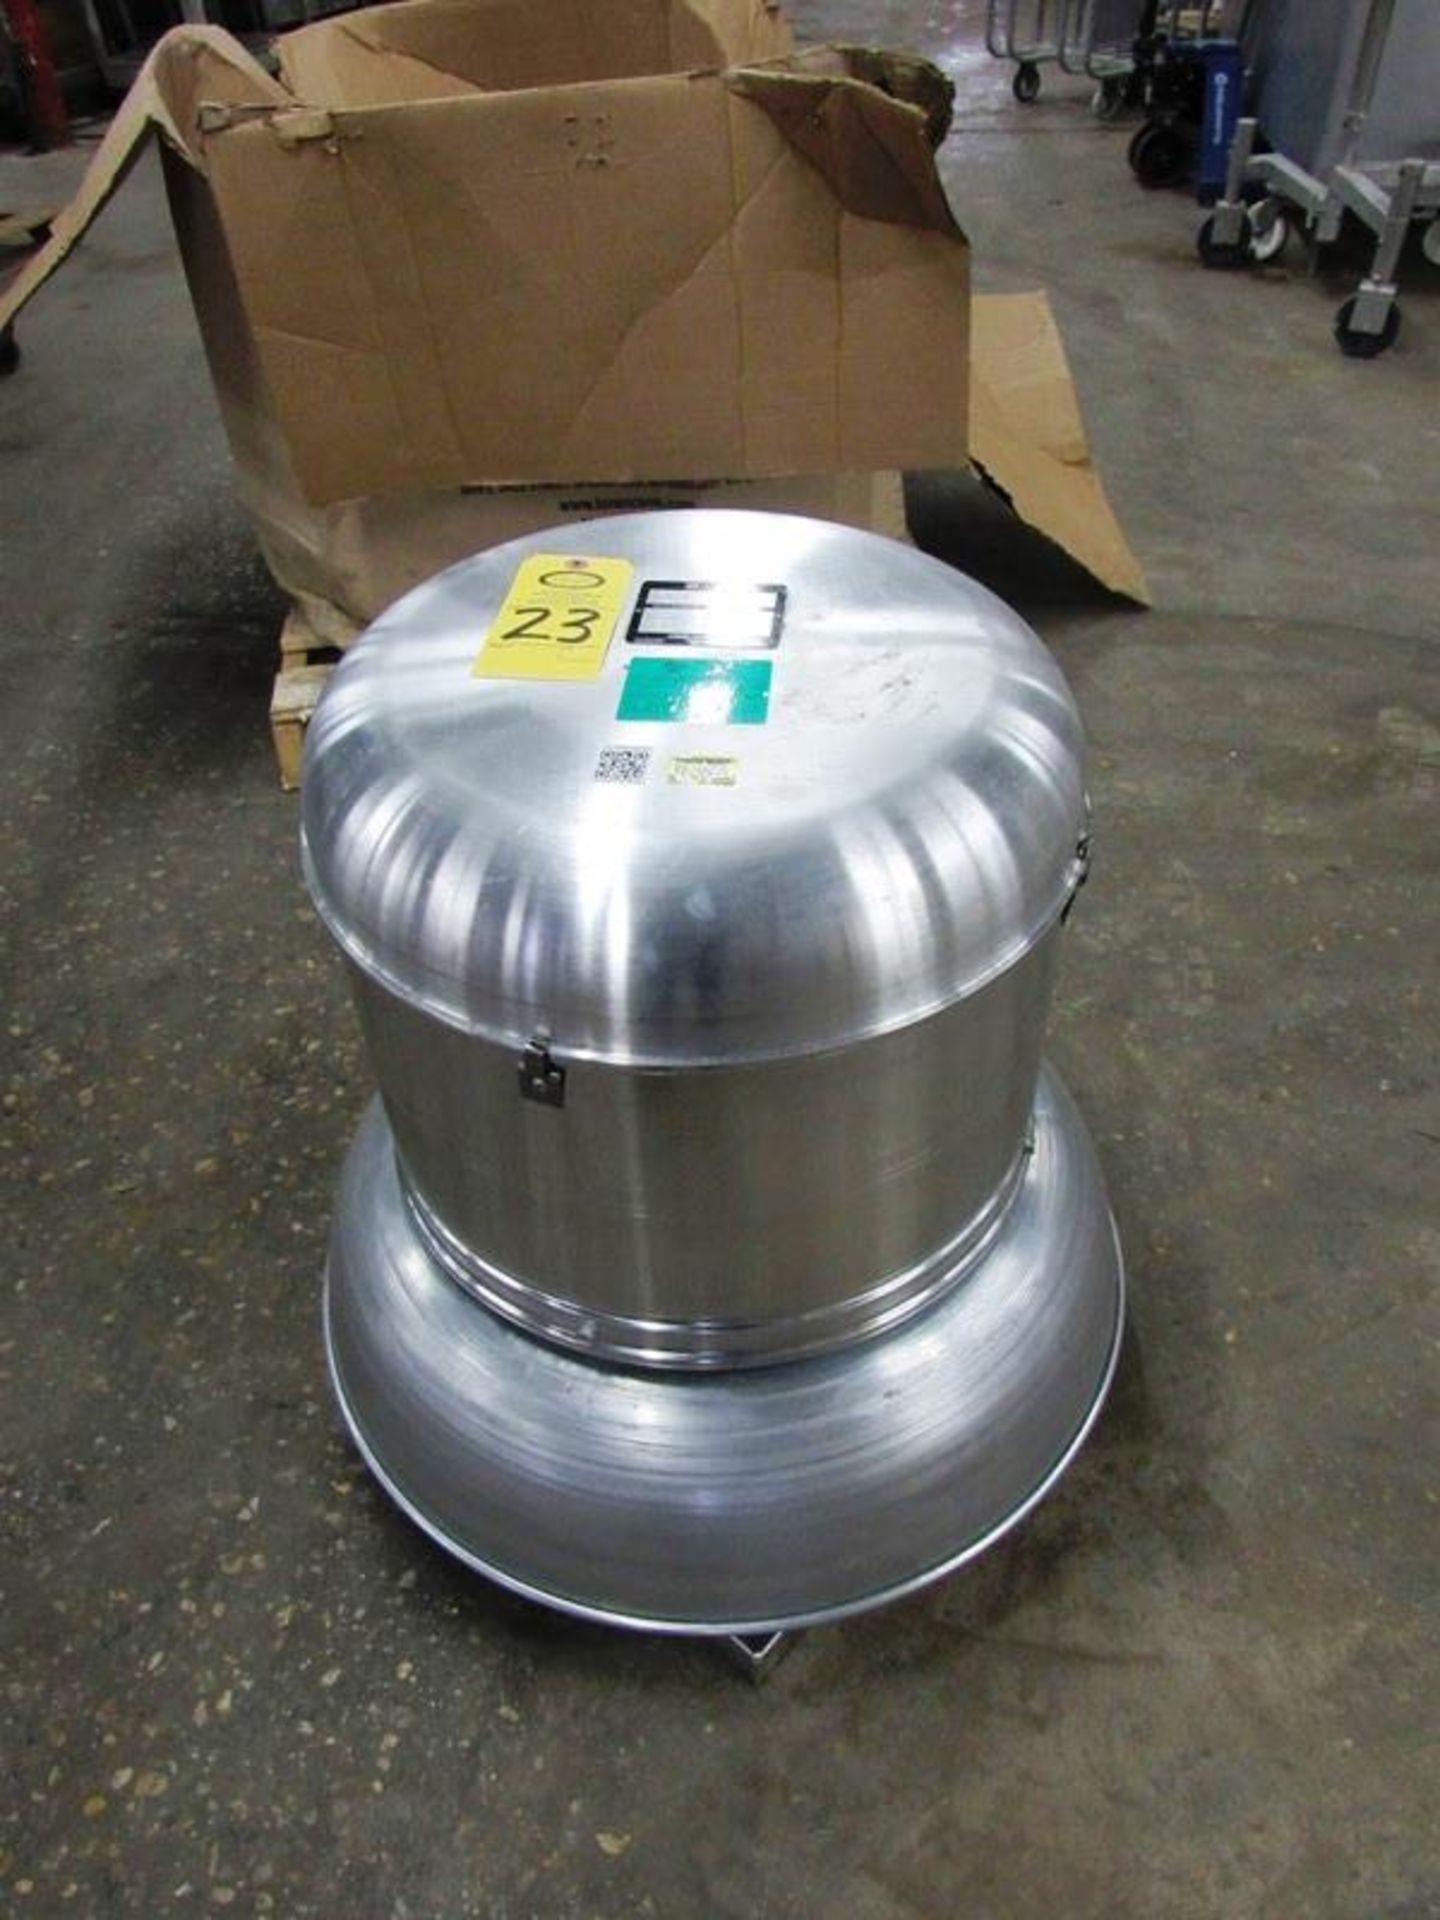 Cook Mdl. 120ACE120C13D Exhaust Fan, Ser. #012SG32092/01/0001801, H.P.0.250, 115 volts, ENCL:ODP,